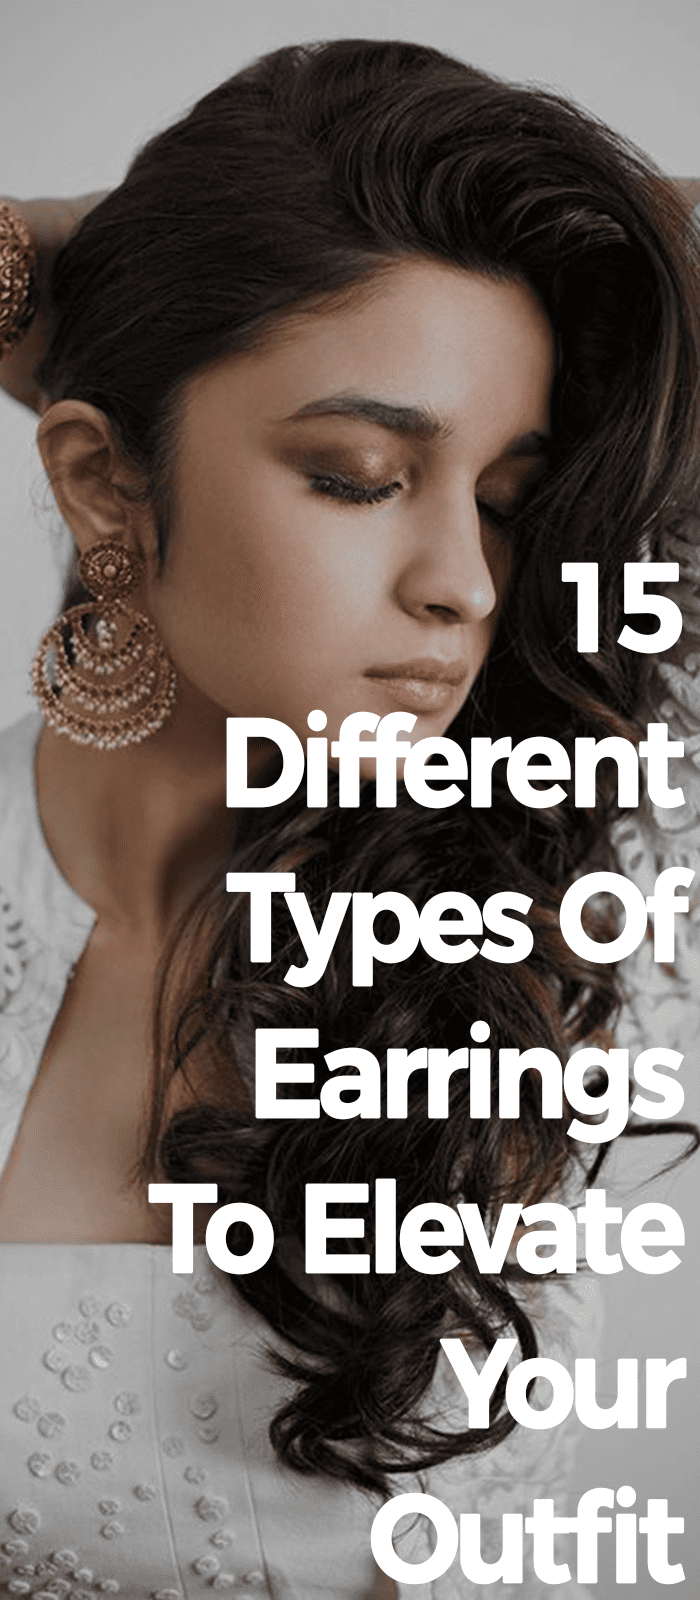 15 Different Types Of Earrings To Elevate Your Outfit